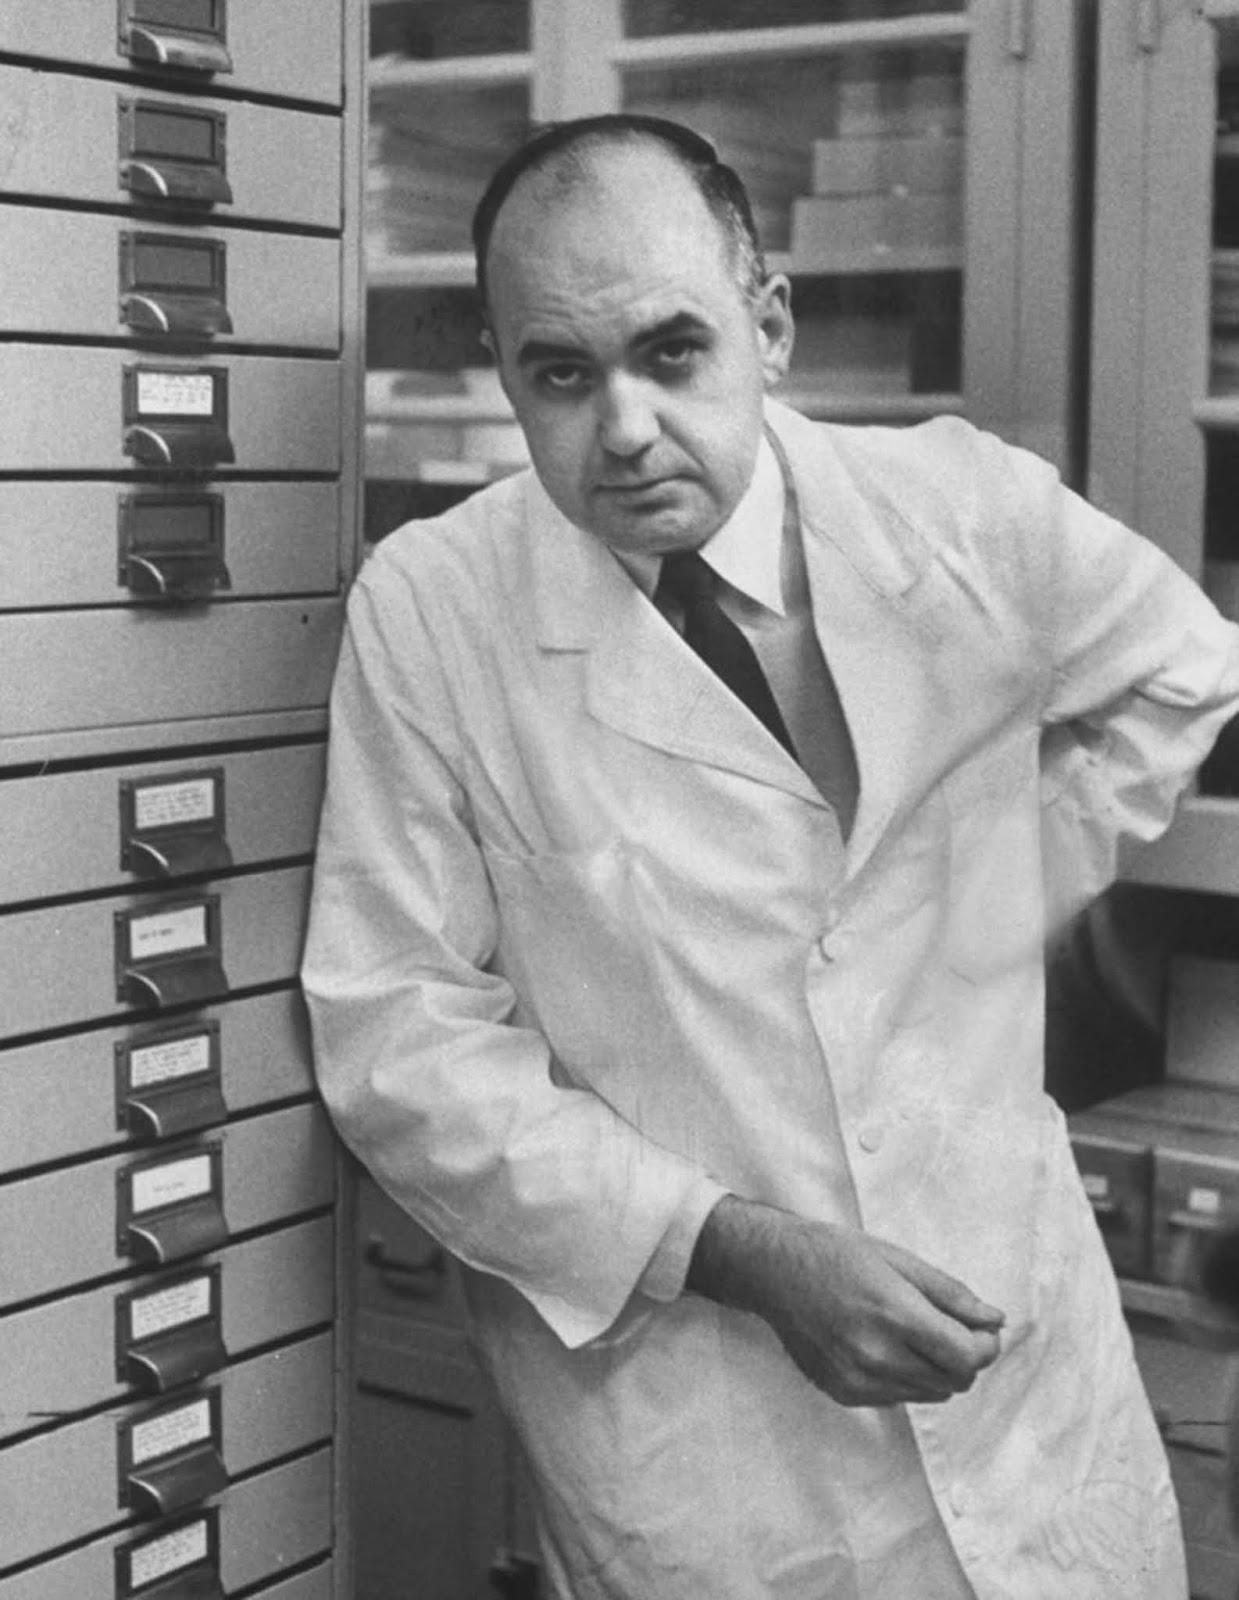 Dr. Maurice Hillman of the Walter Reed Army Institute of Research acquired flu specimens from Japan on April 18, before anyone in the U.S. was infected, and by May 18, his team had the virus isolated. He then gave the virus to six drug firms to develop a vaccine.